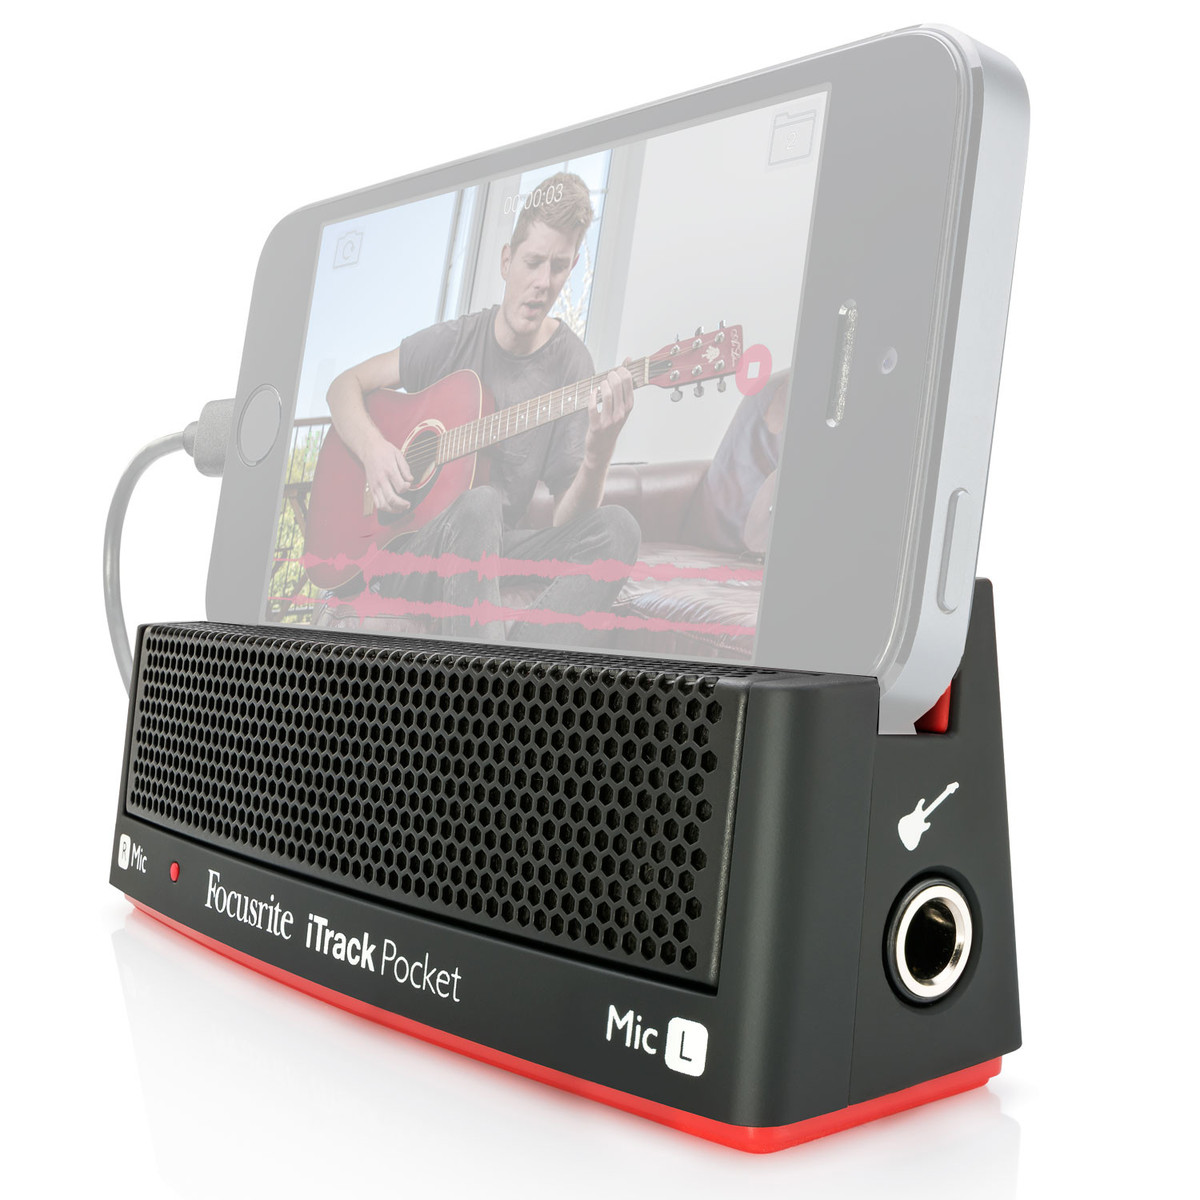 Image of Focusrite iTrack Pocket Audio and Video Recorder for iPhone